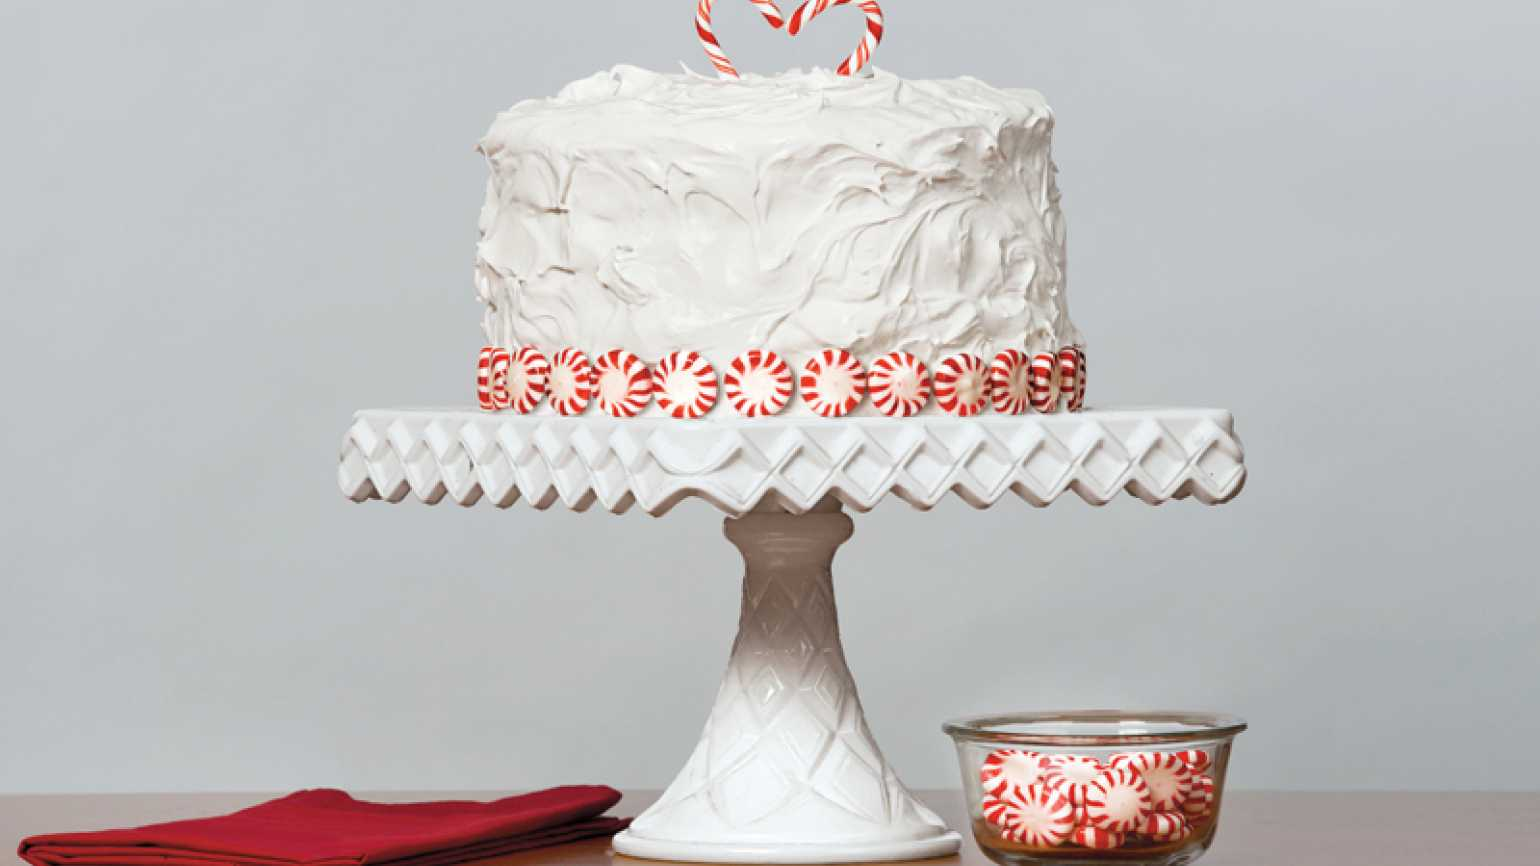 Peppermint Swirl 3-Layer Cake